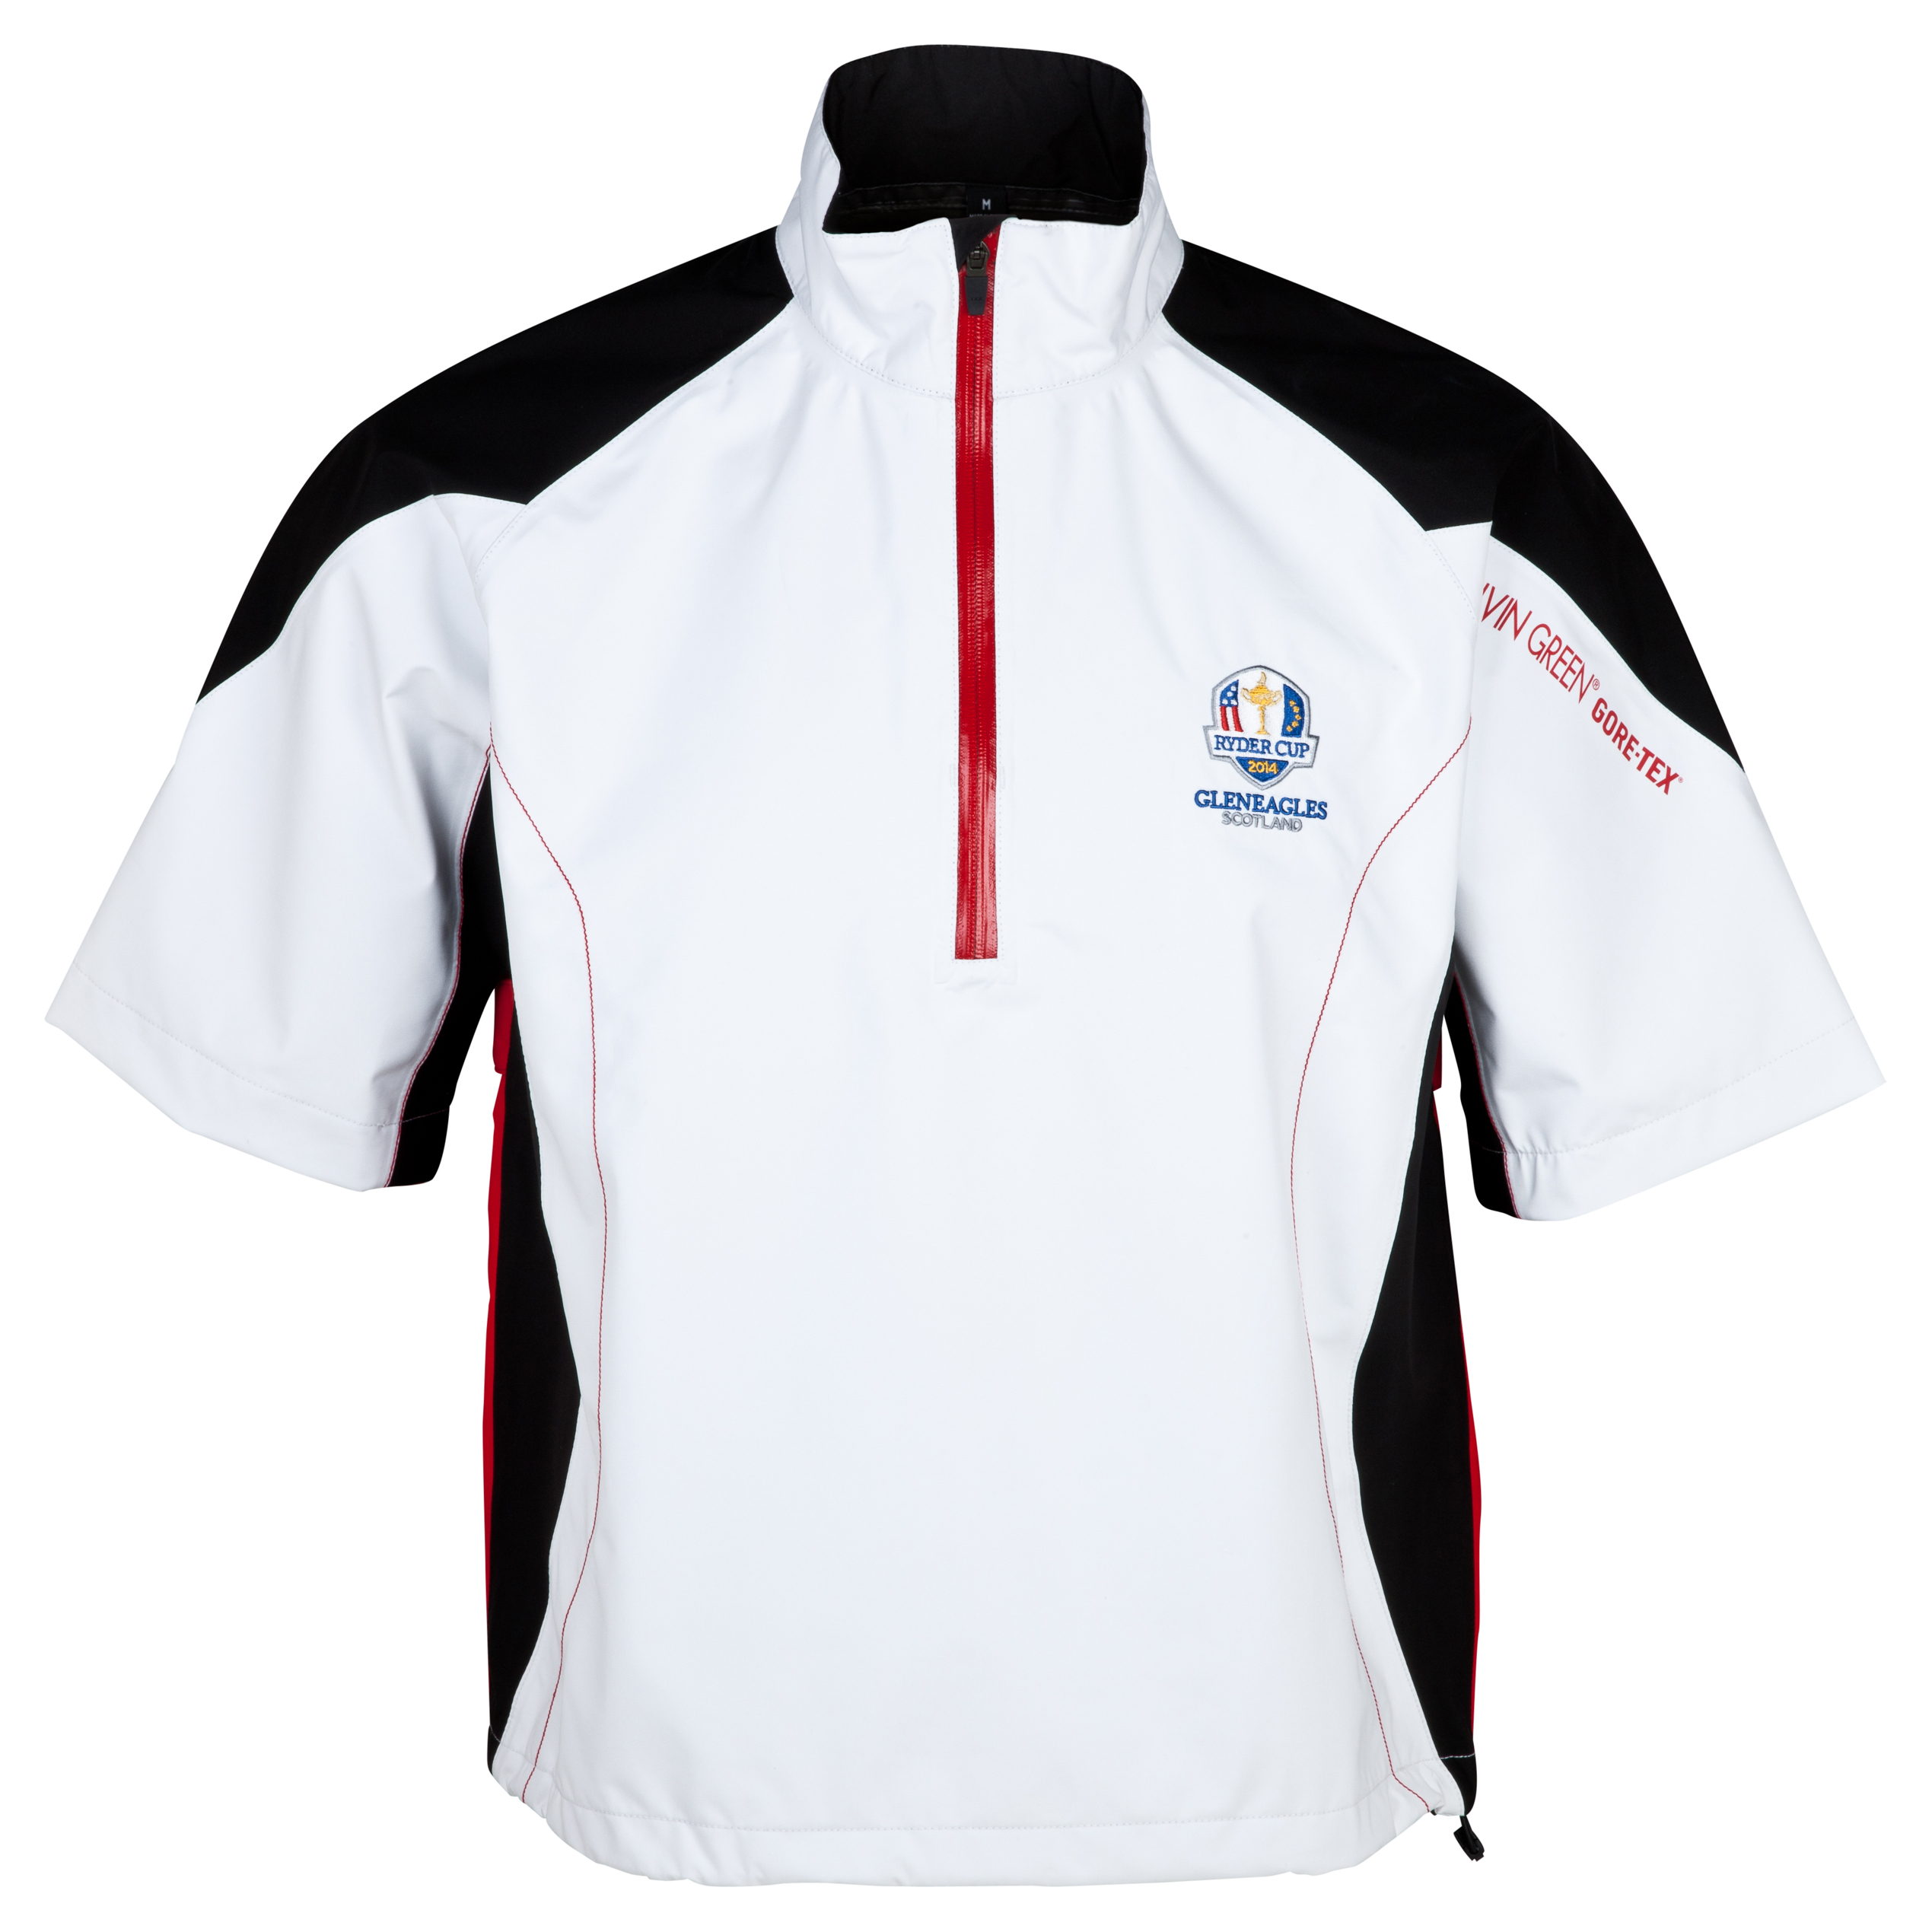 The Ryder Cup Gleneagles 2014 Galvin Green Alvis Half Zip Waterproof Jacket - White/Black